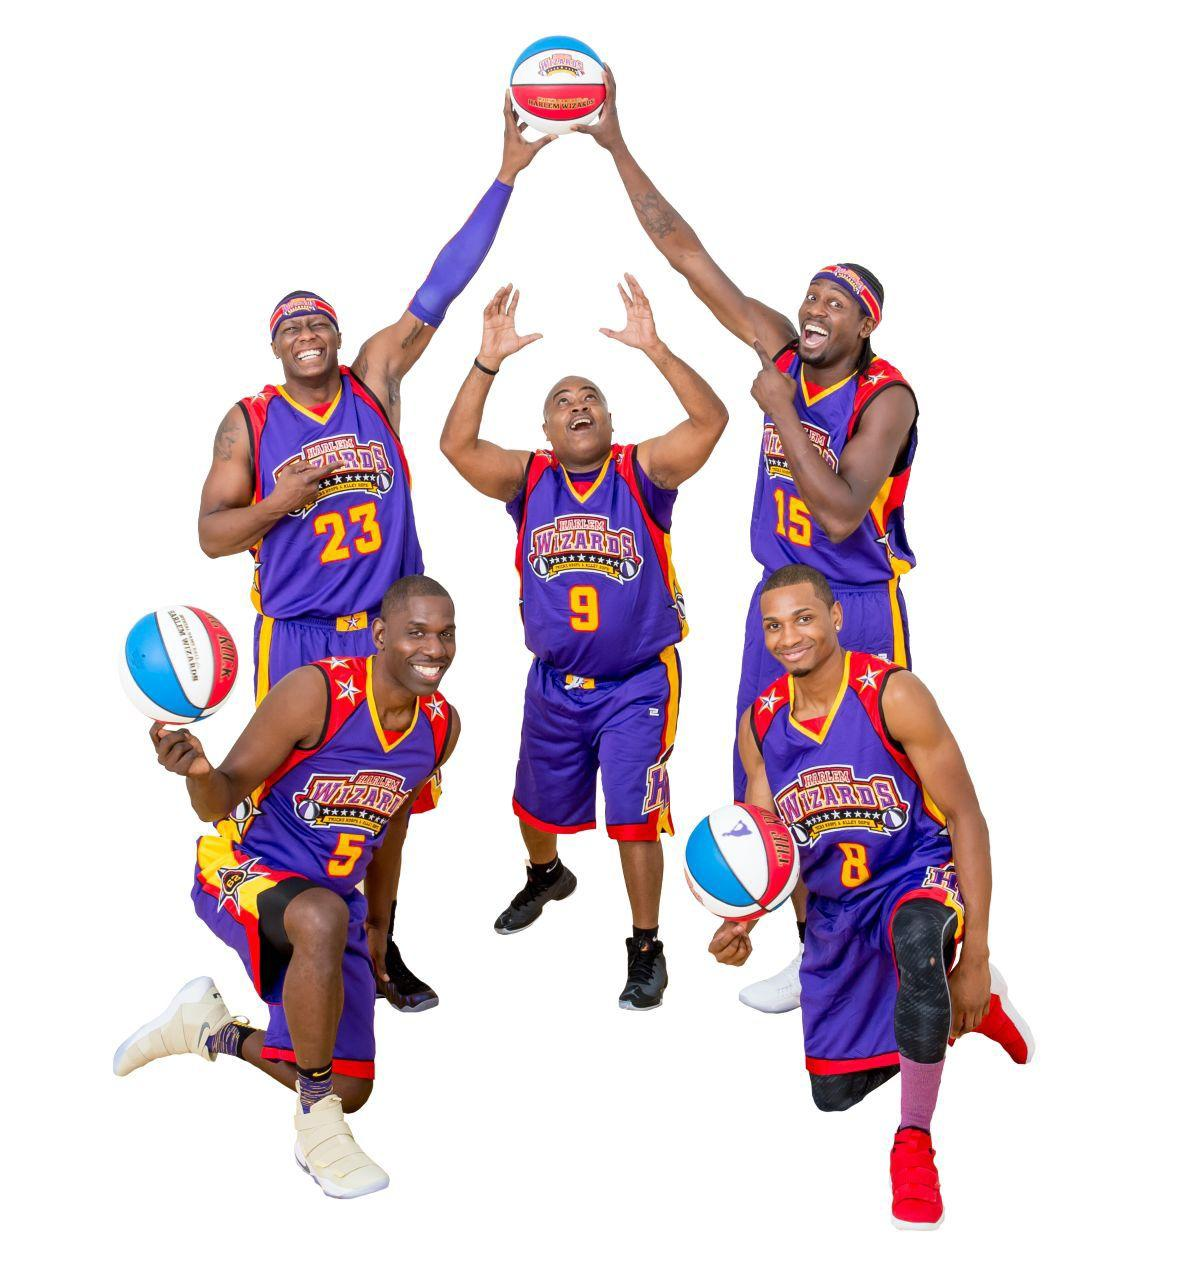 (VIDEO) Harlem Wizards take on High Bridge school faculty on Sunday, Jan. 14